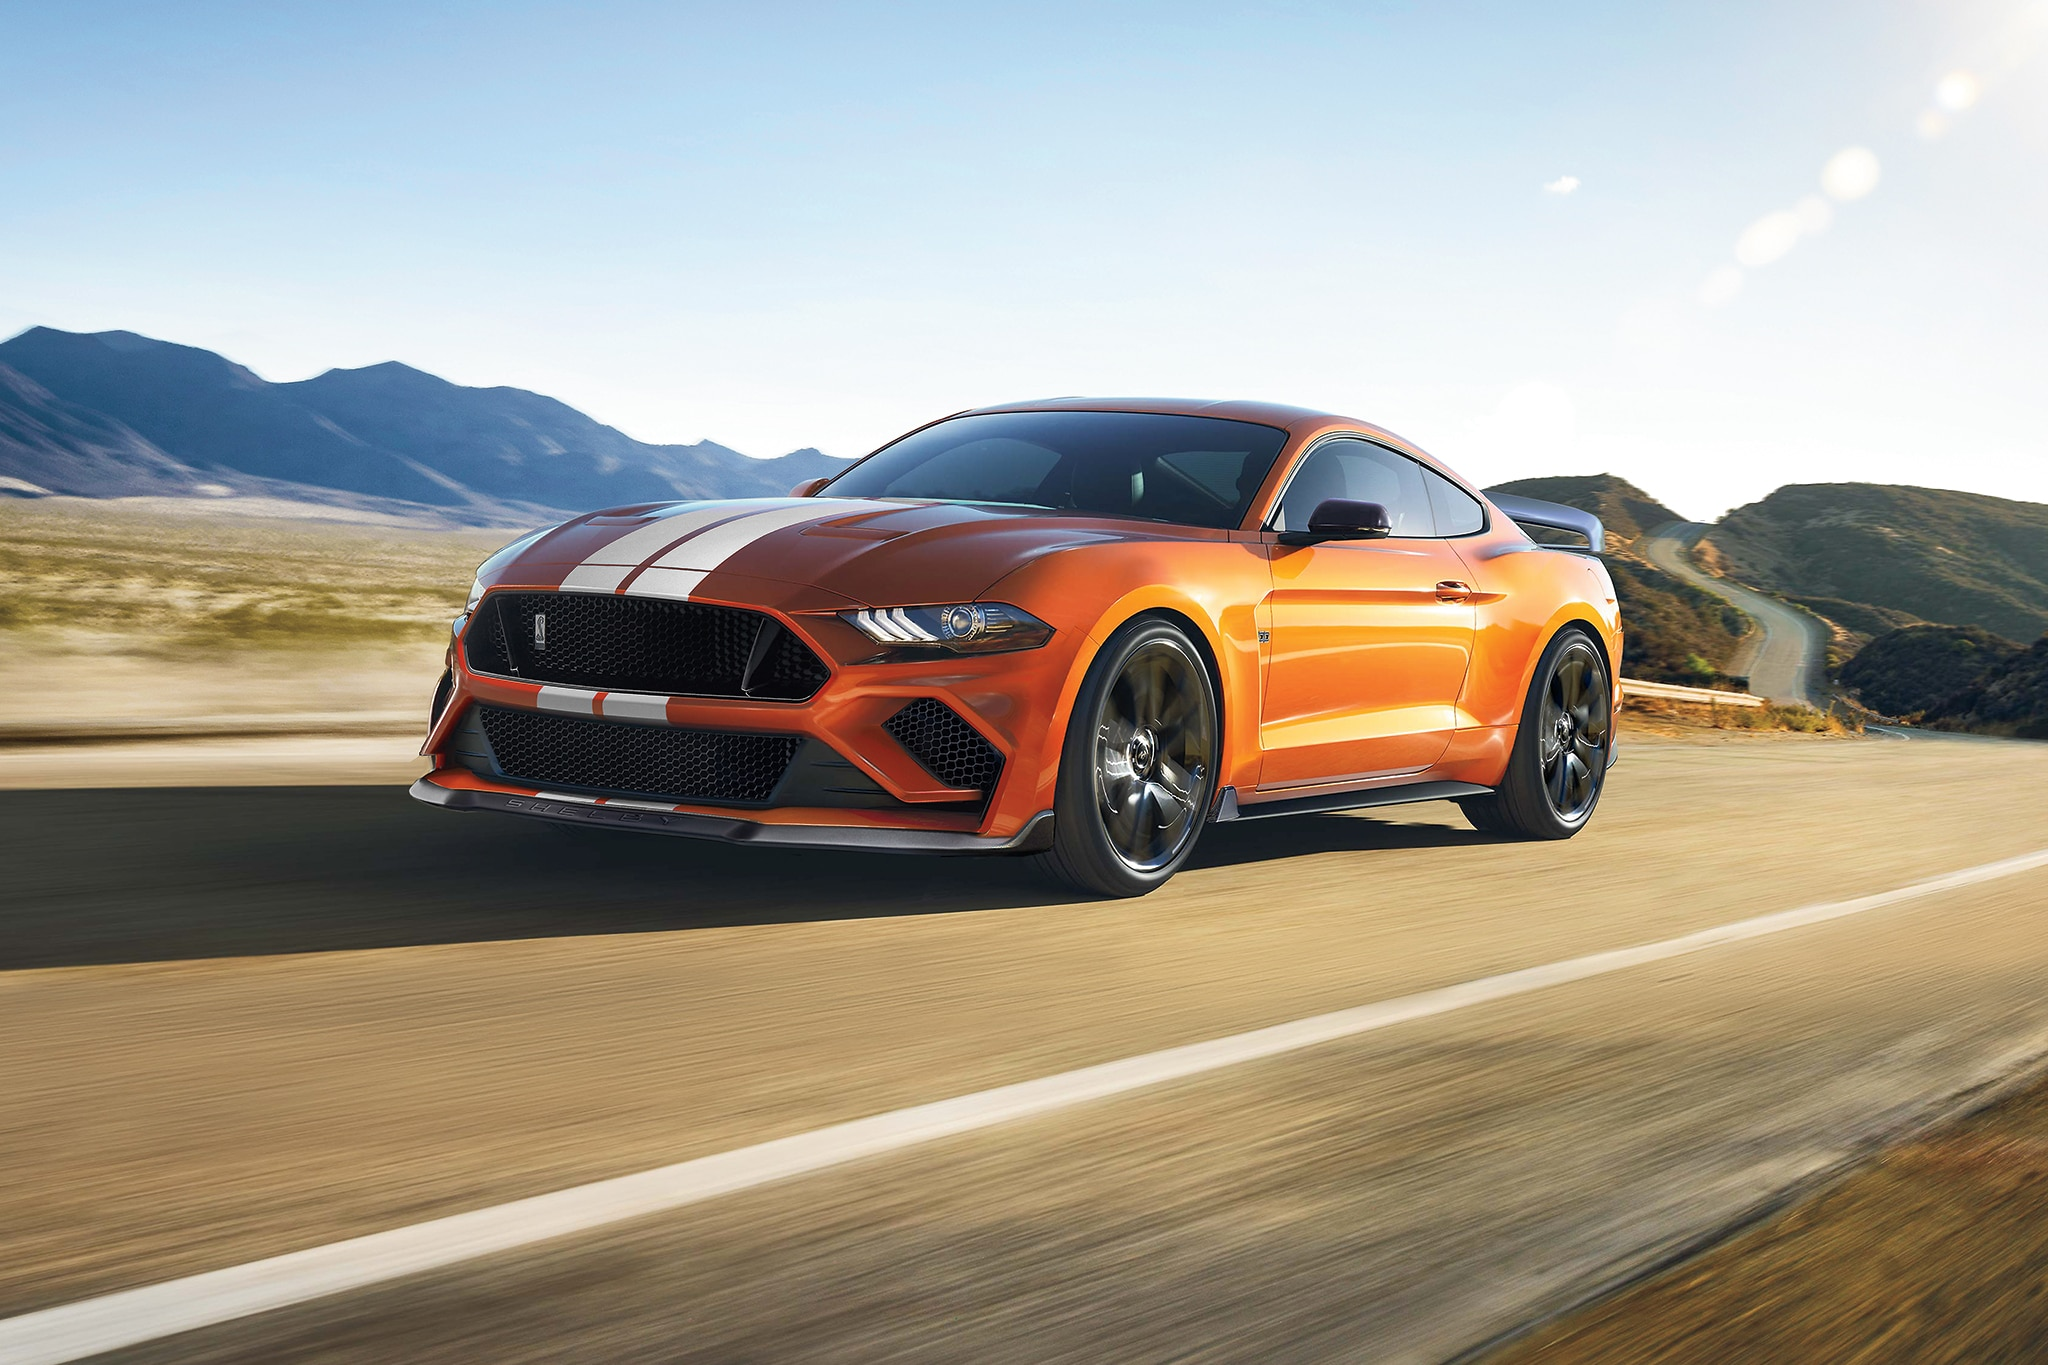 2019 Ford Shelby Mustang GT500